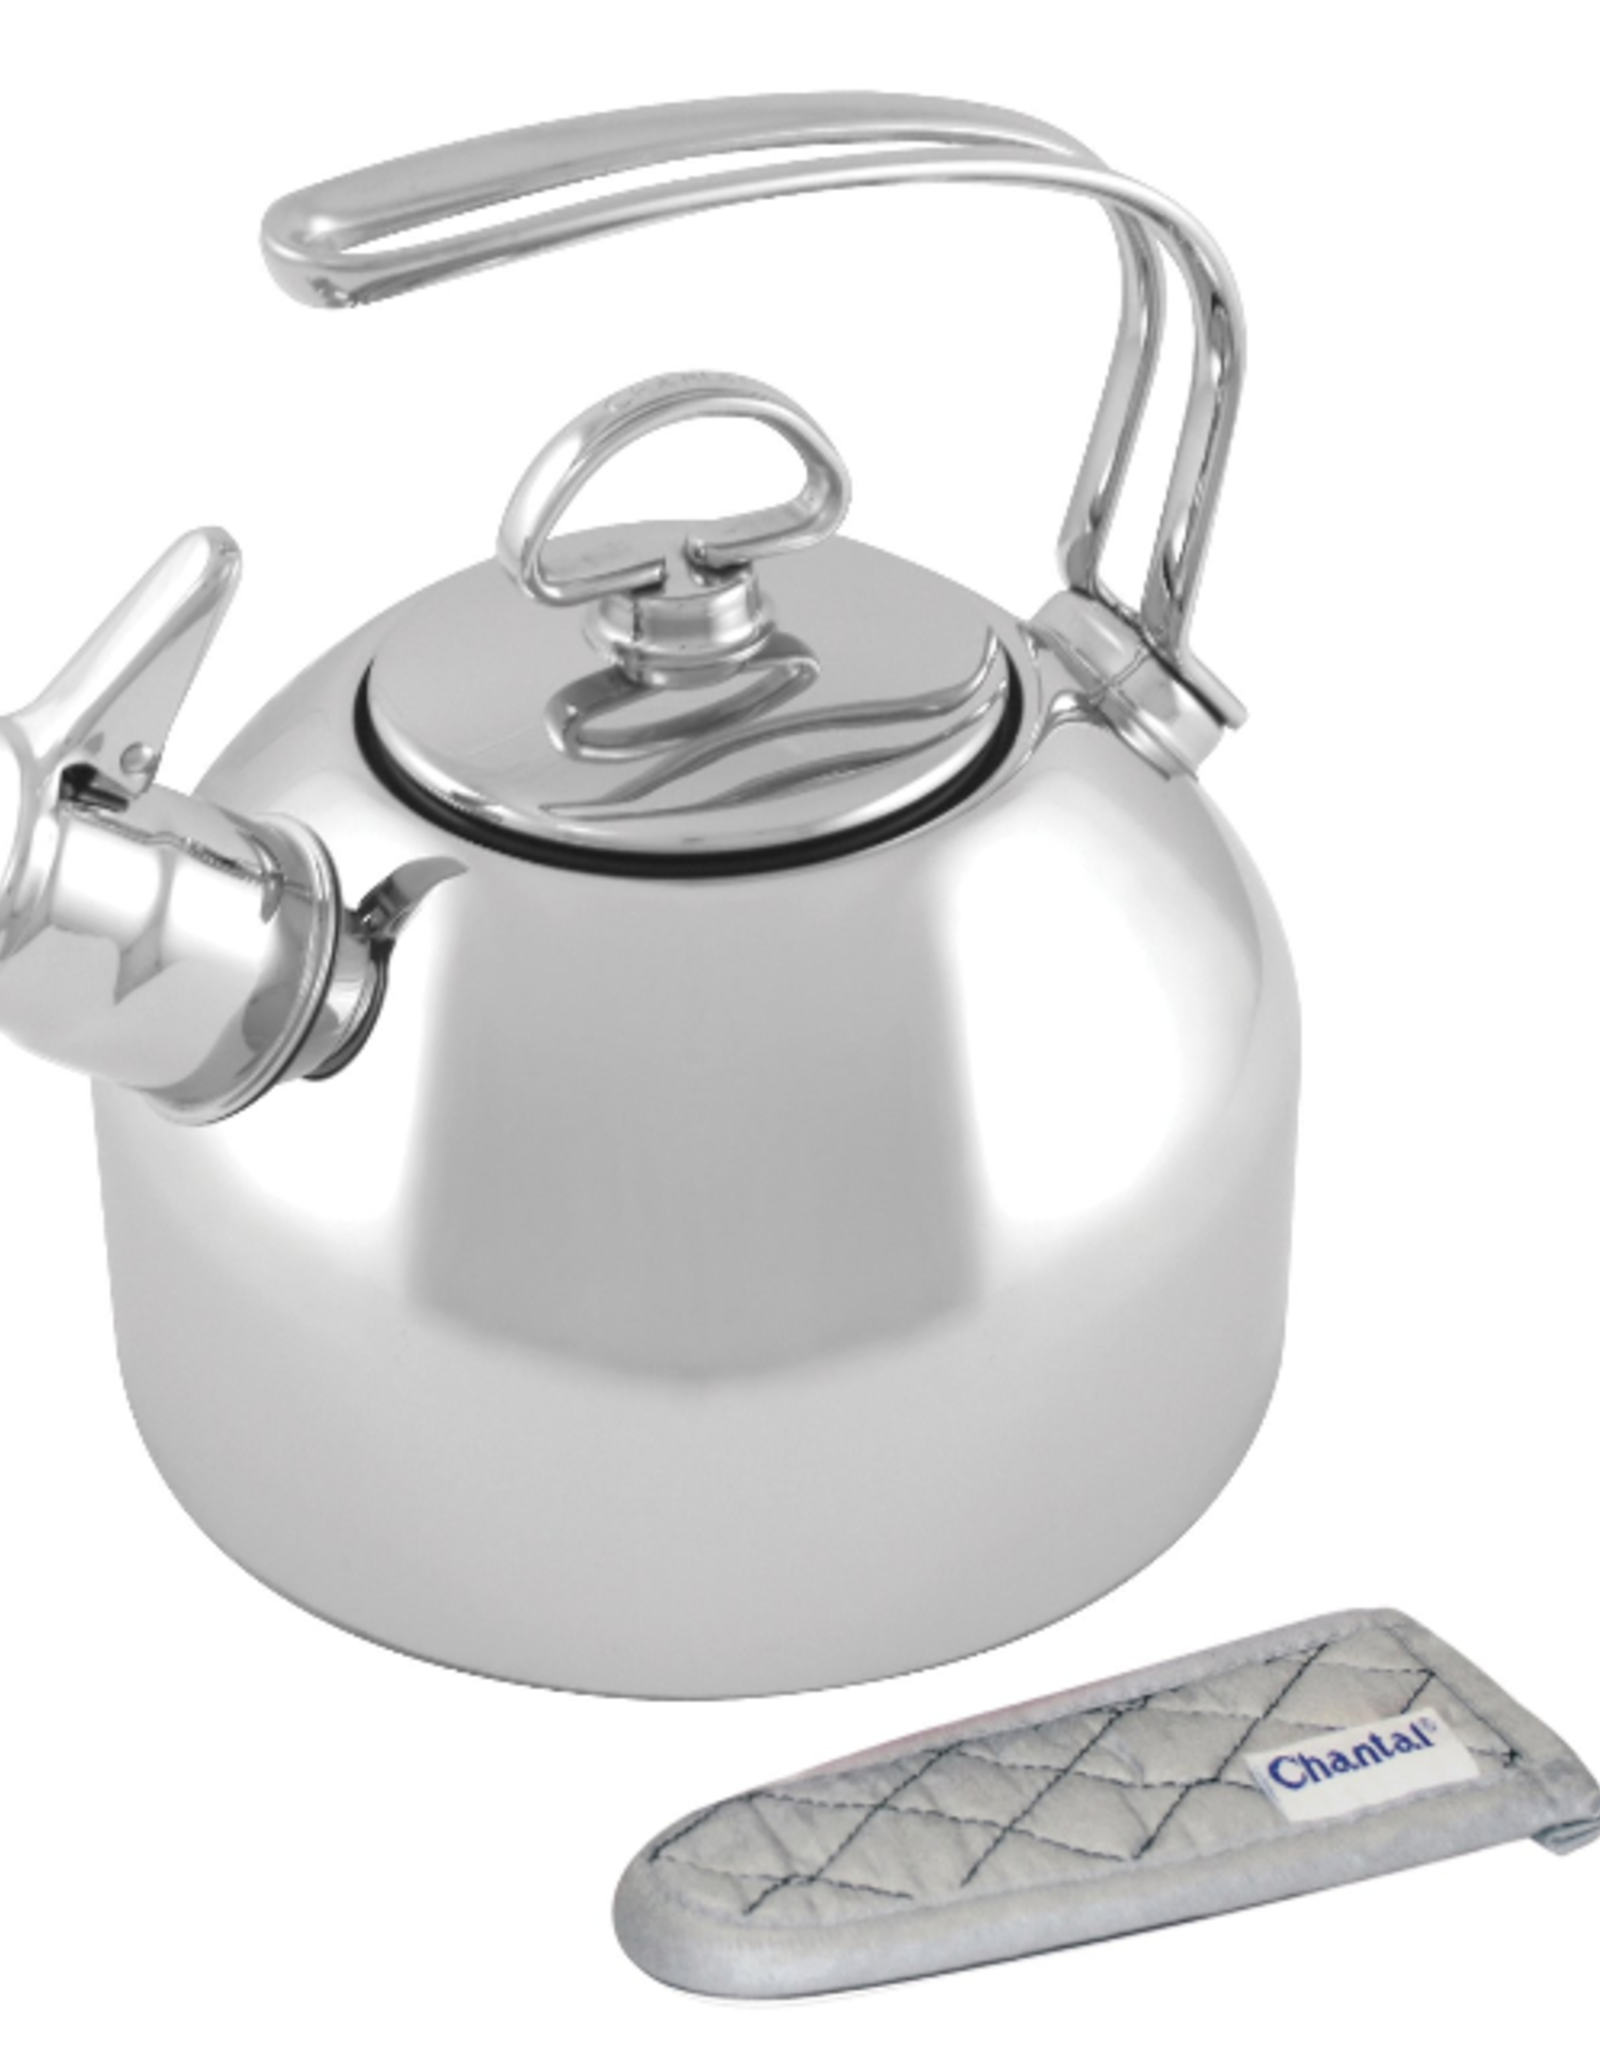 Chantal Classic SS Whistling Teakettle